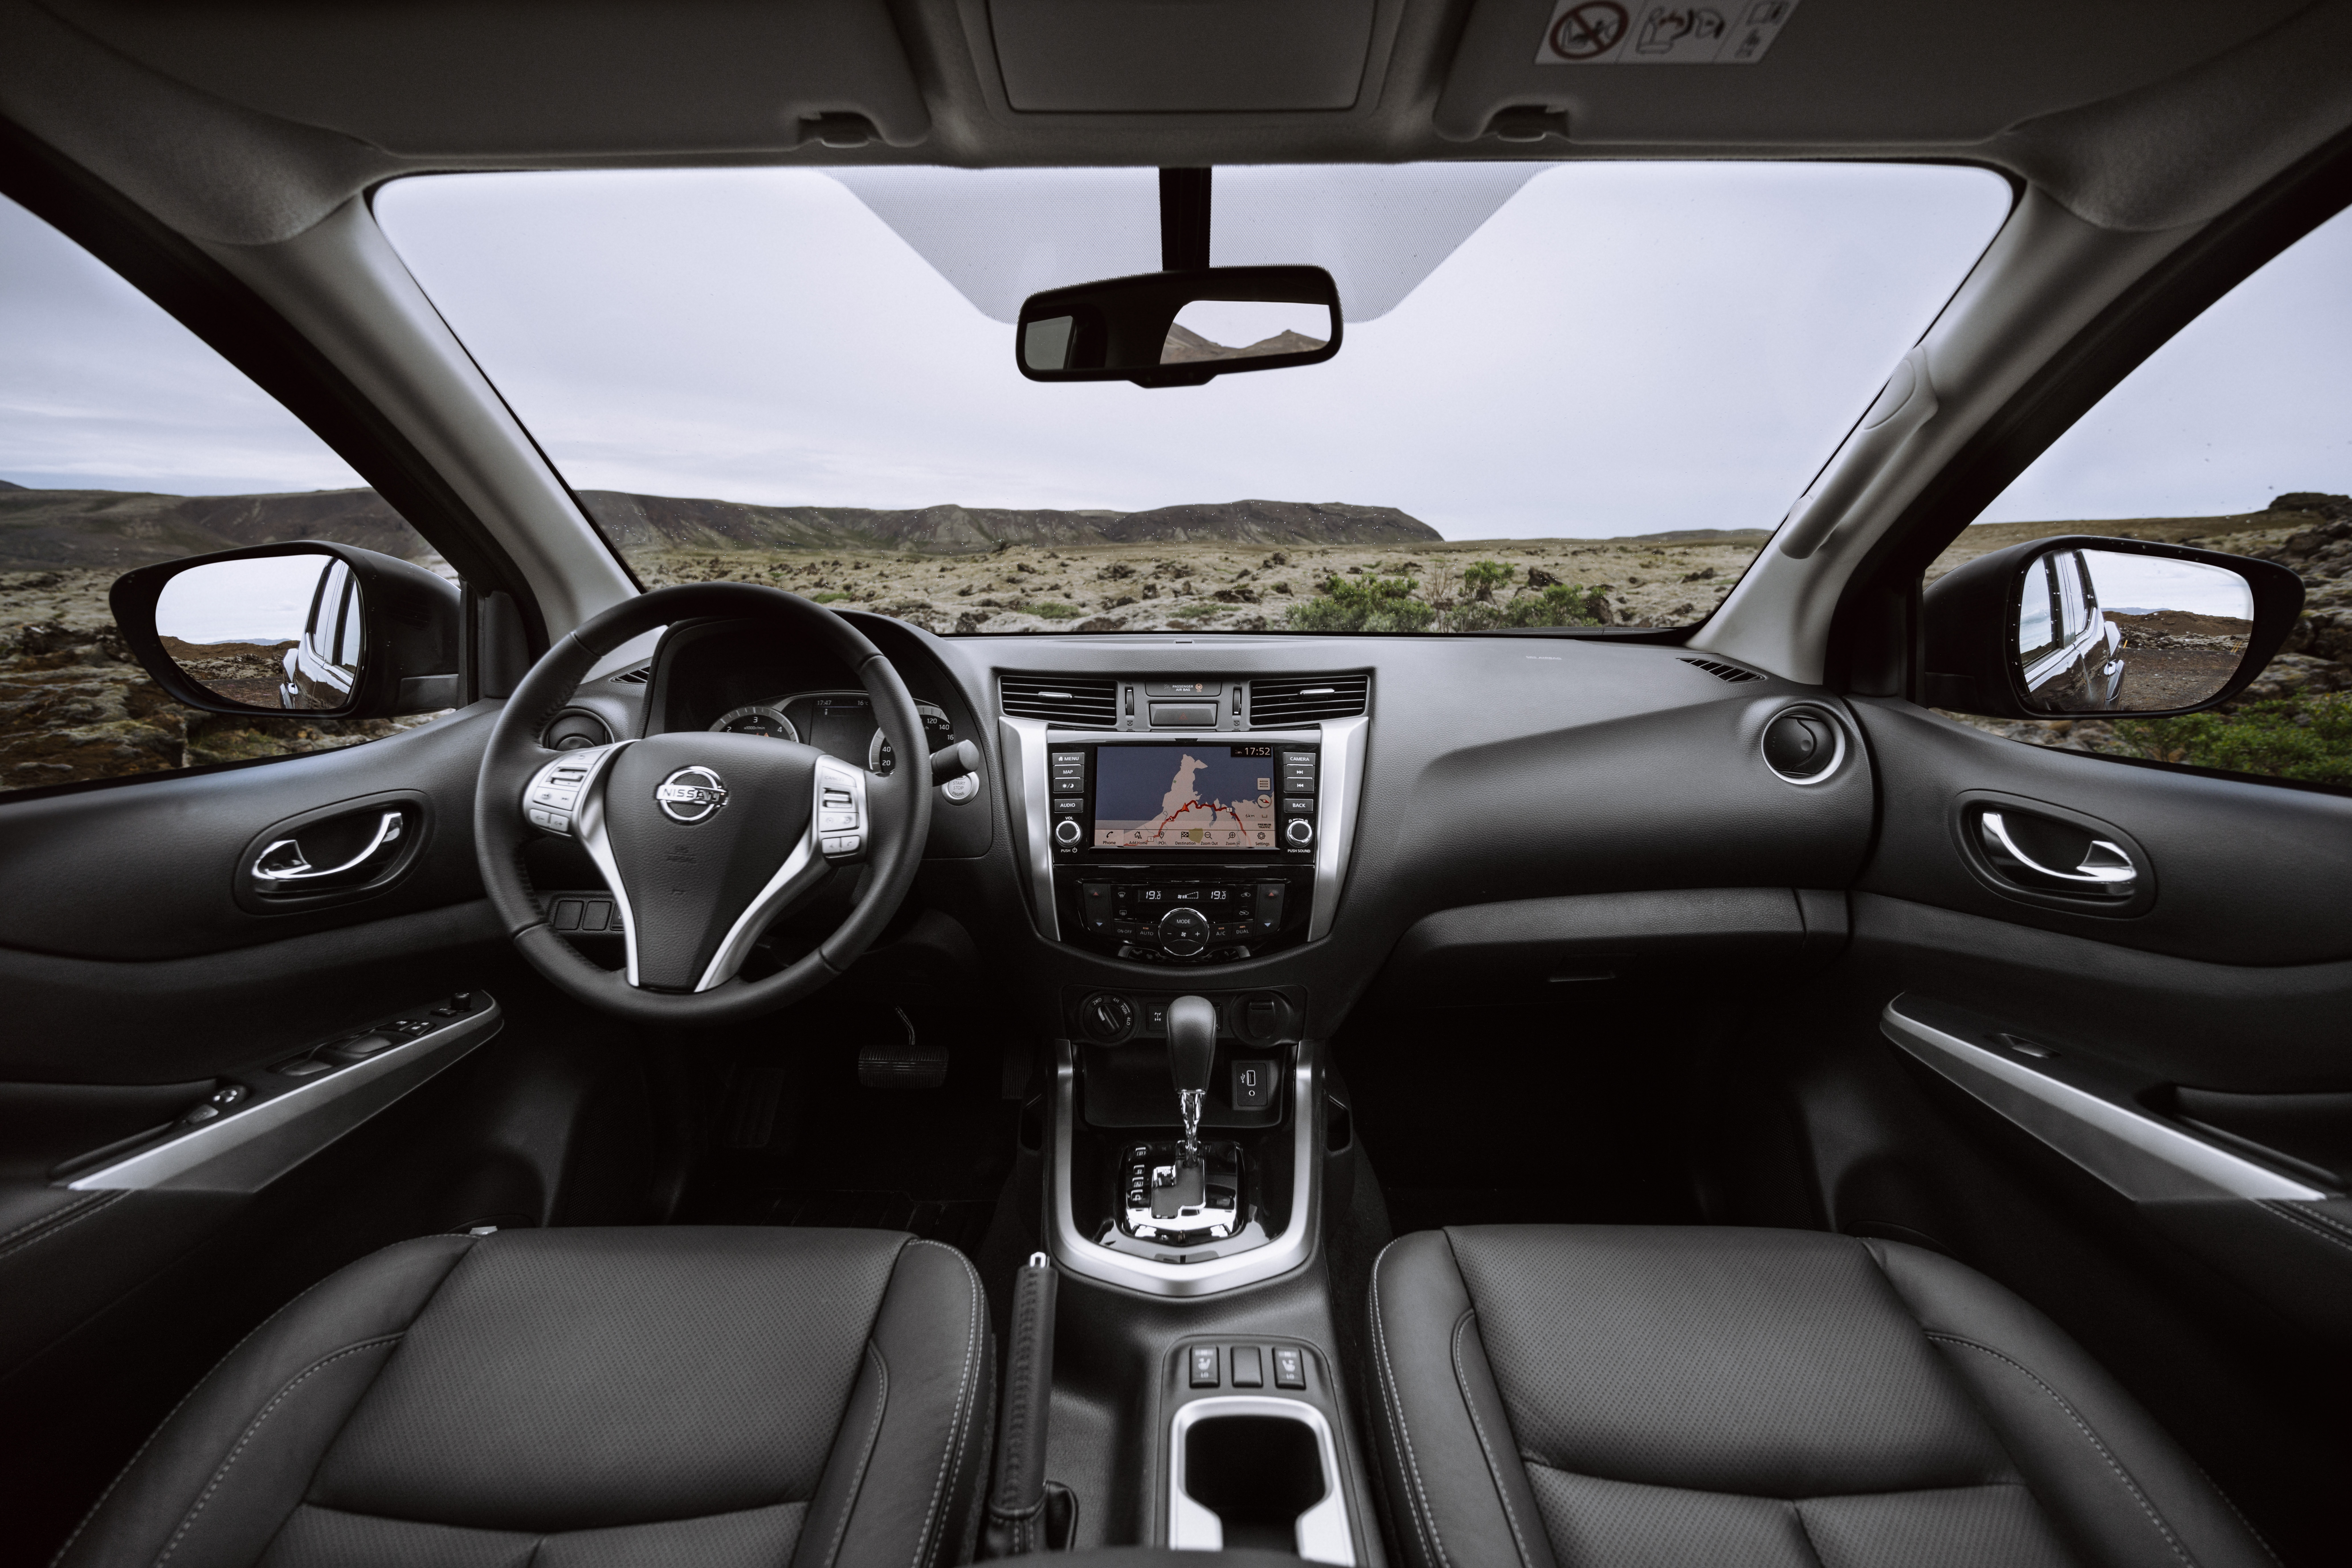 The interior now benefits from a larger infotainment screen